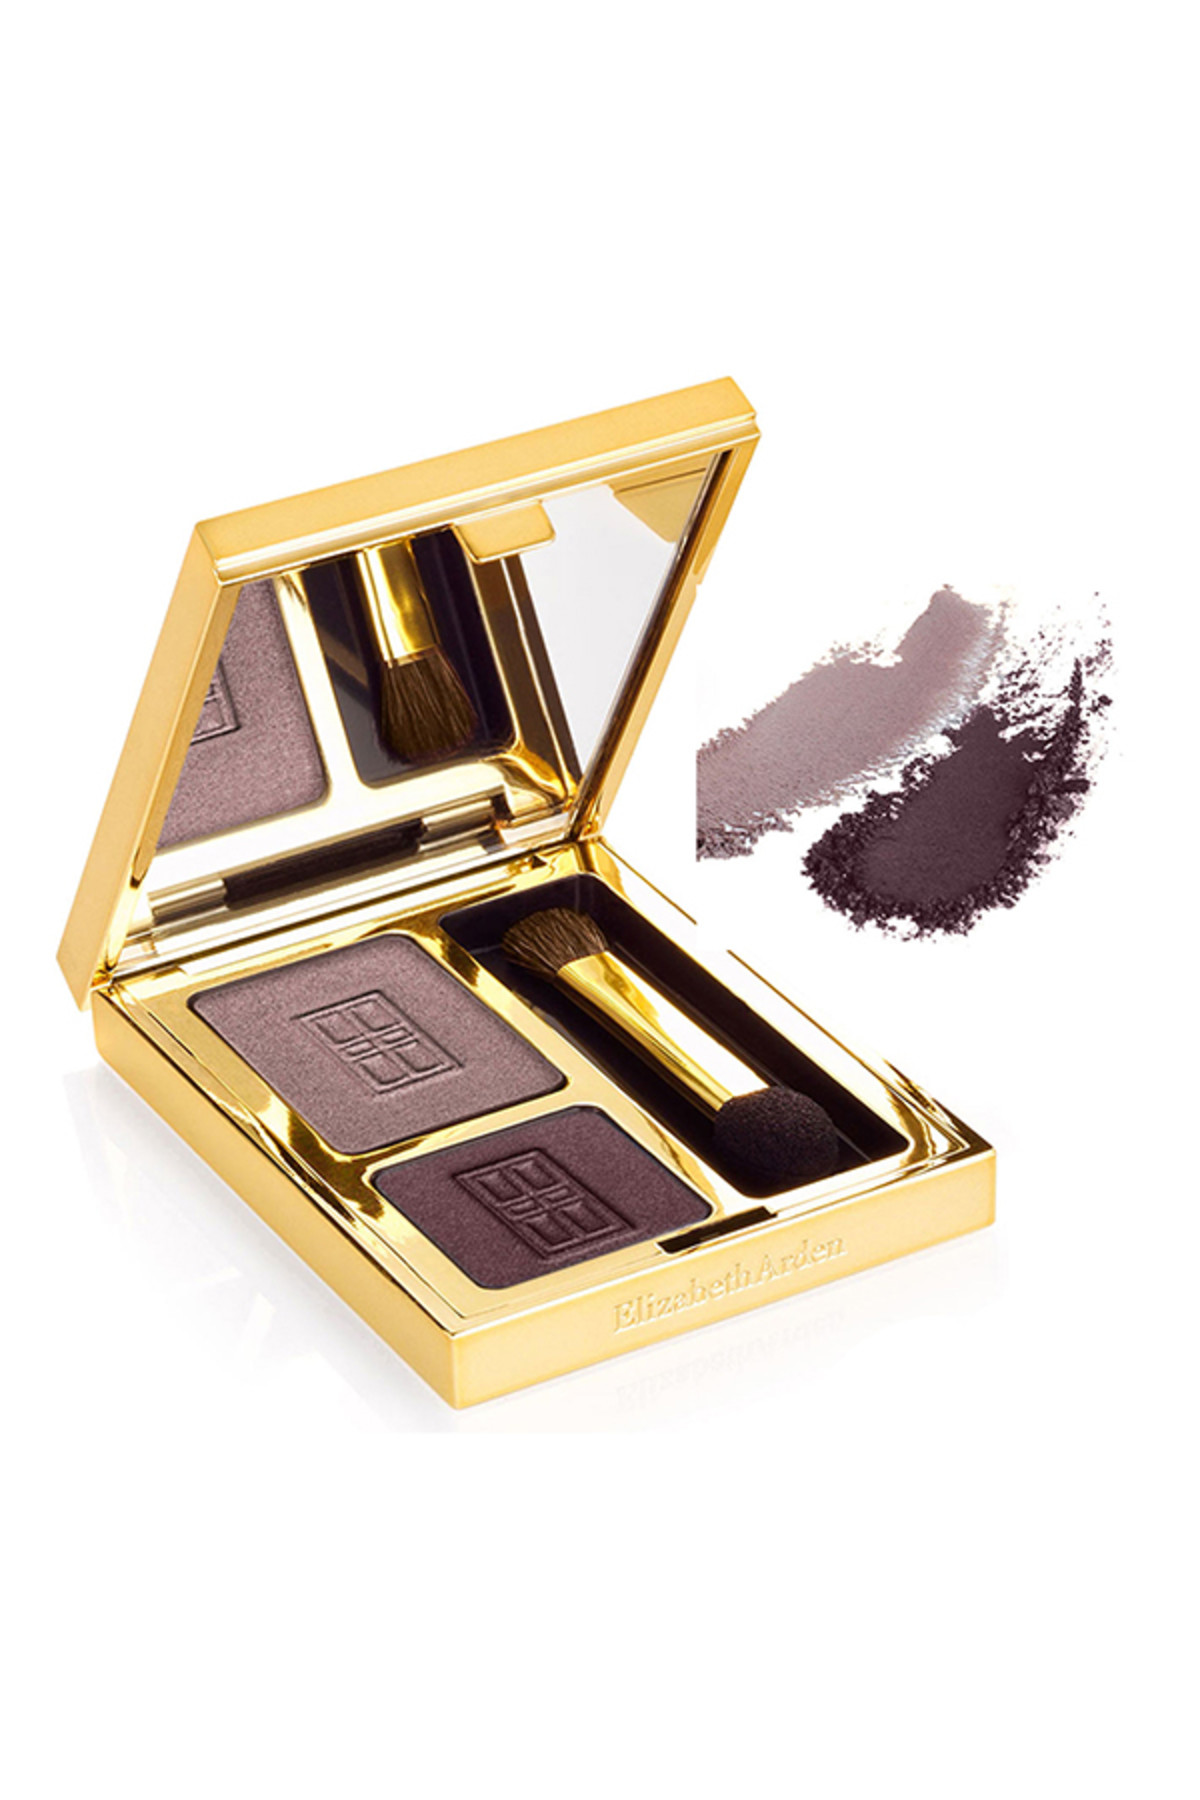 Elizabeth Arden  Göz Farı  Beautiful Color Eye Shadow Duo 4 Heathered Plum 085805134389  207.02 TL